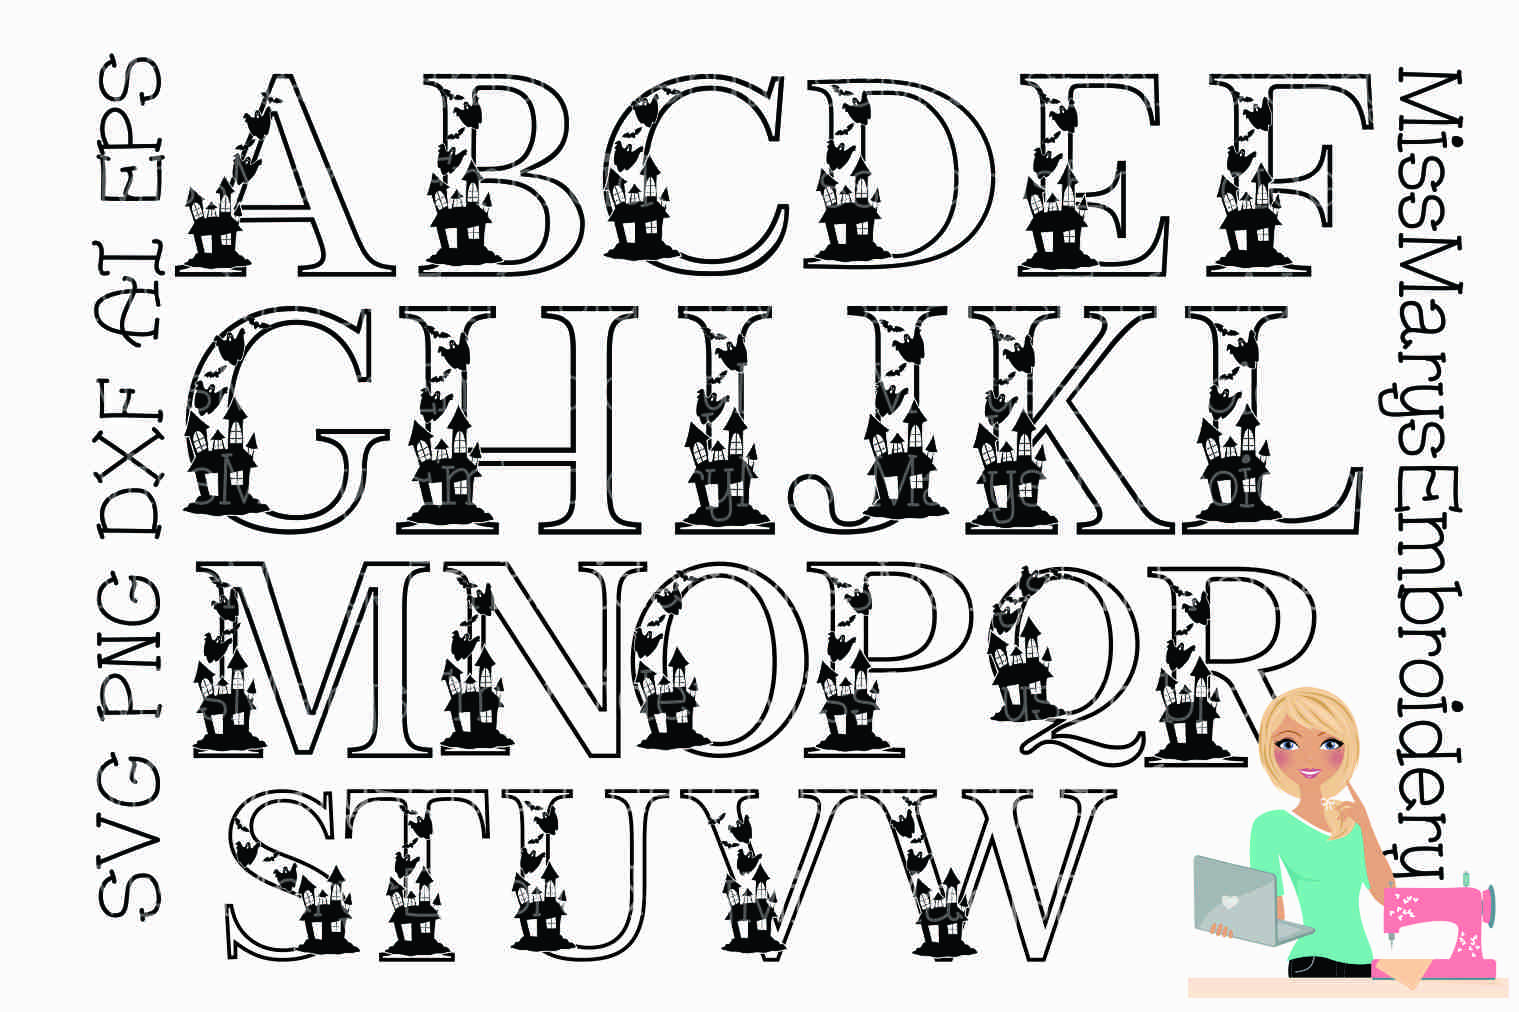 Haunted Halloween Letters SVG Cutting File PNG DXF AI EPS example image 2